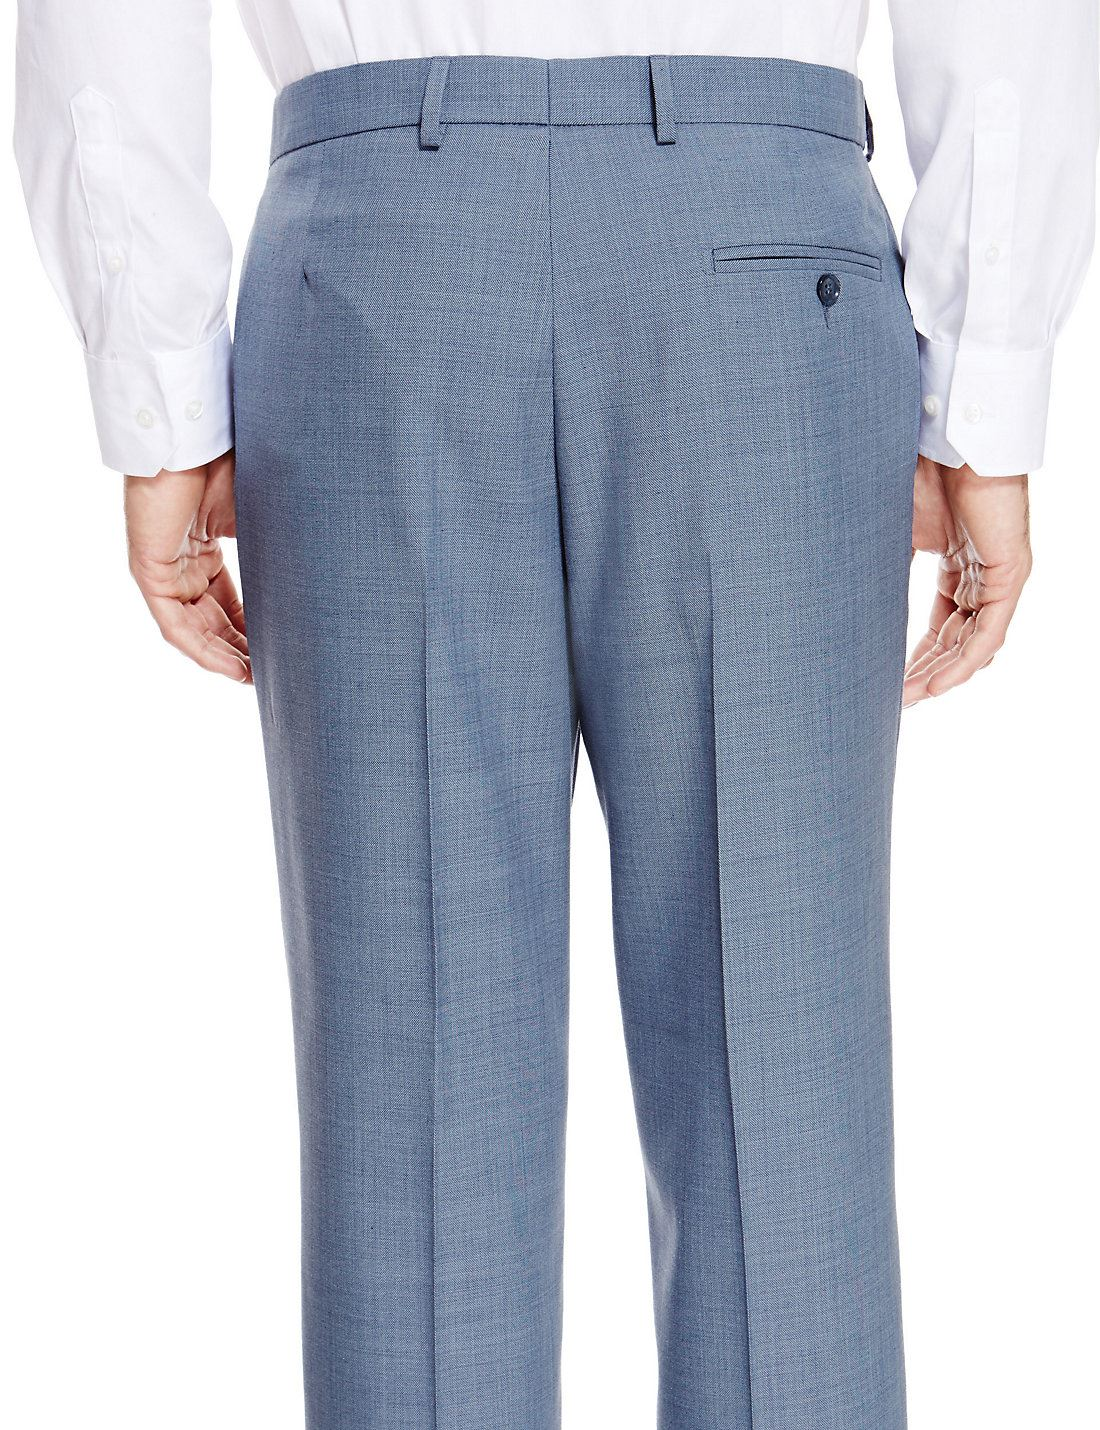 EX-M-amp-S-Marks-And-Spencer-Ultimate-Perfomance-Flat-Front-Trousers-With-Wool thumbnail 6